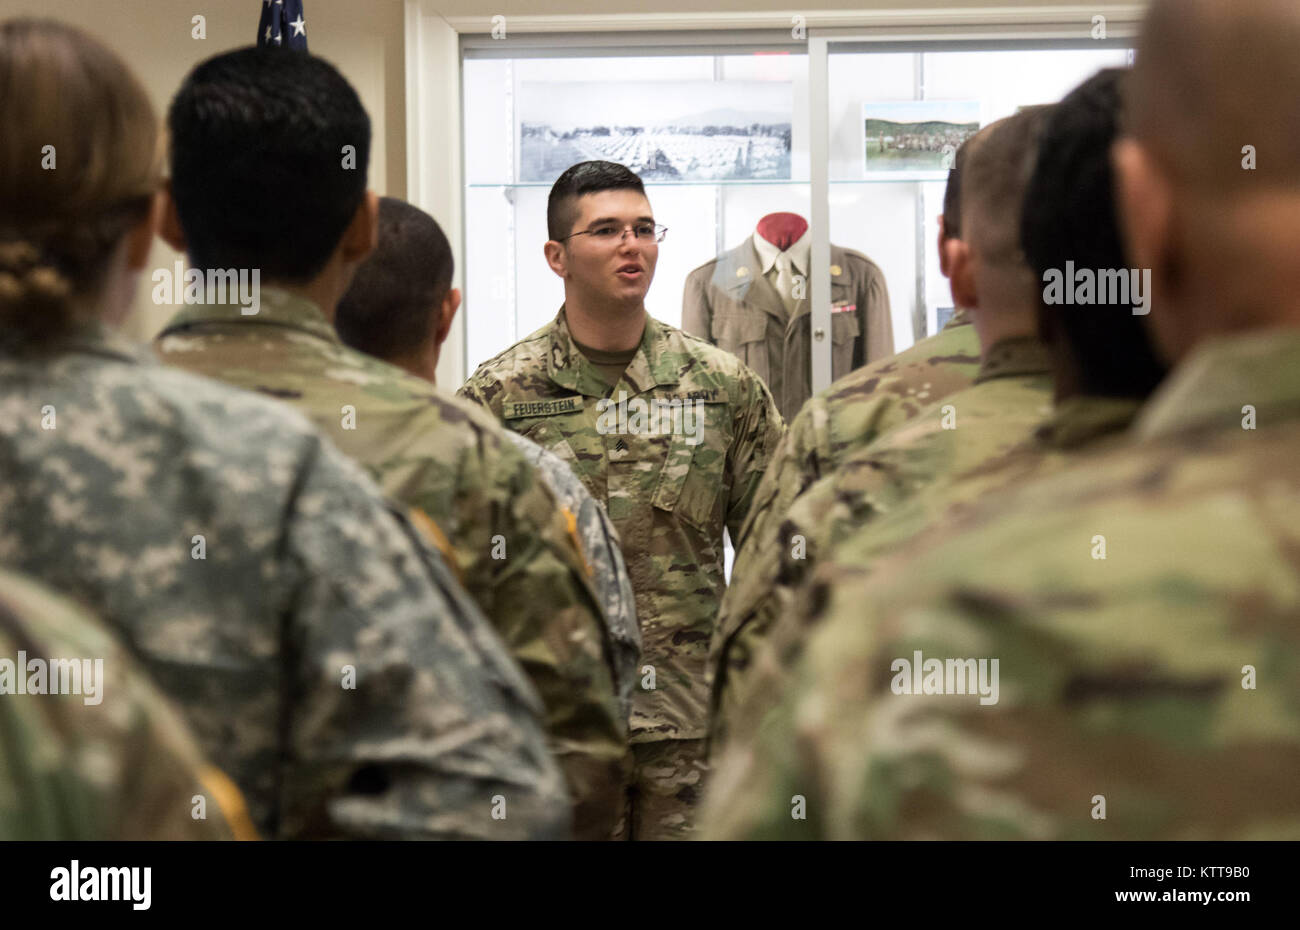 U.S. Army Spc. Max Feuerstein, a paralegal noncommissioned officer assigned to the Headquarters and Supply Company, - Stock Image